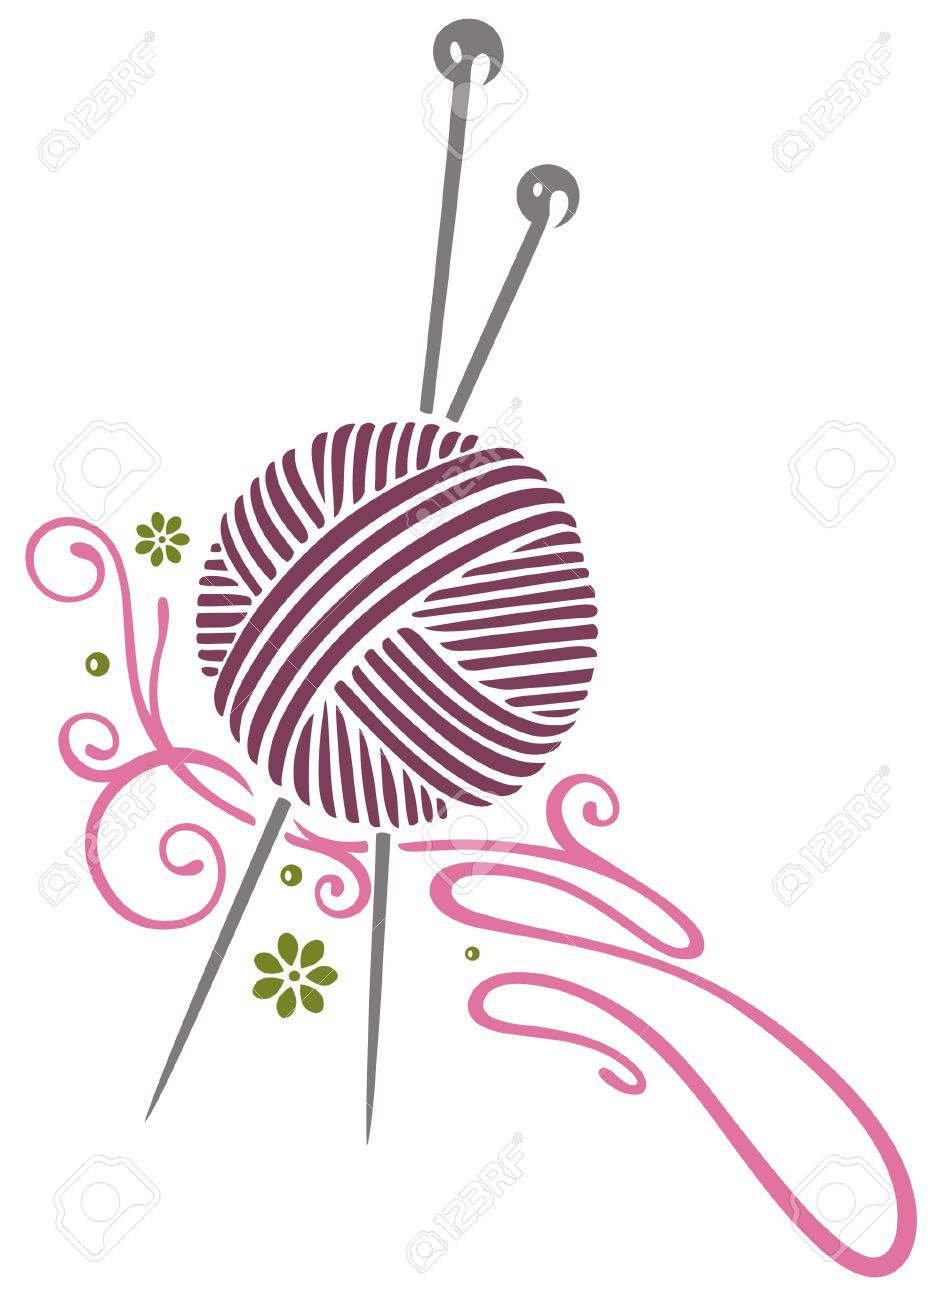 937x1300 21682493 Purple Wool With Knitting Needles Stock Vector Clipart